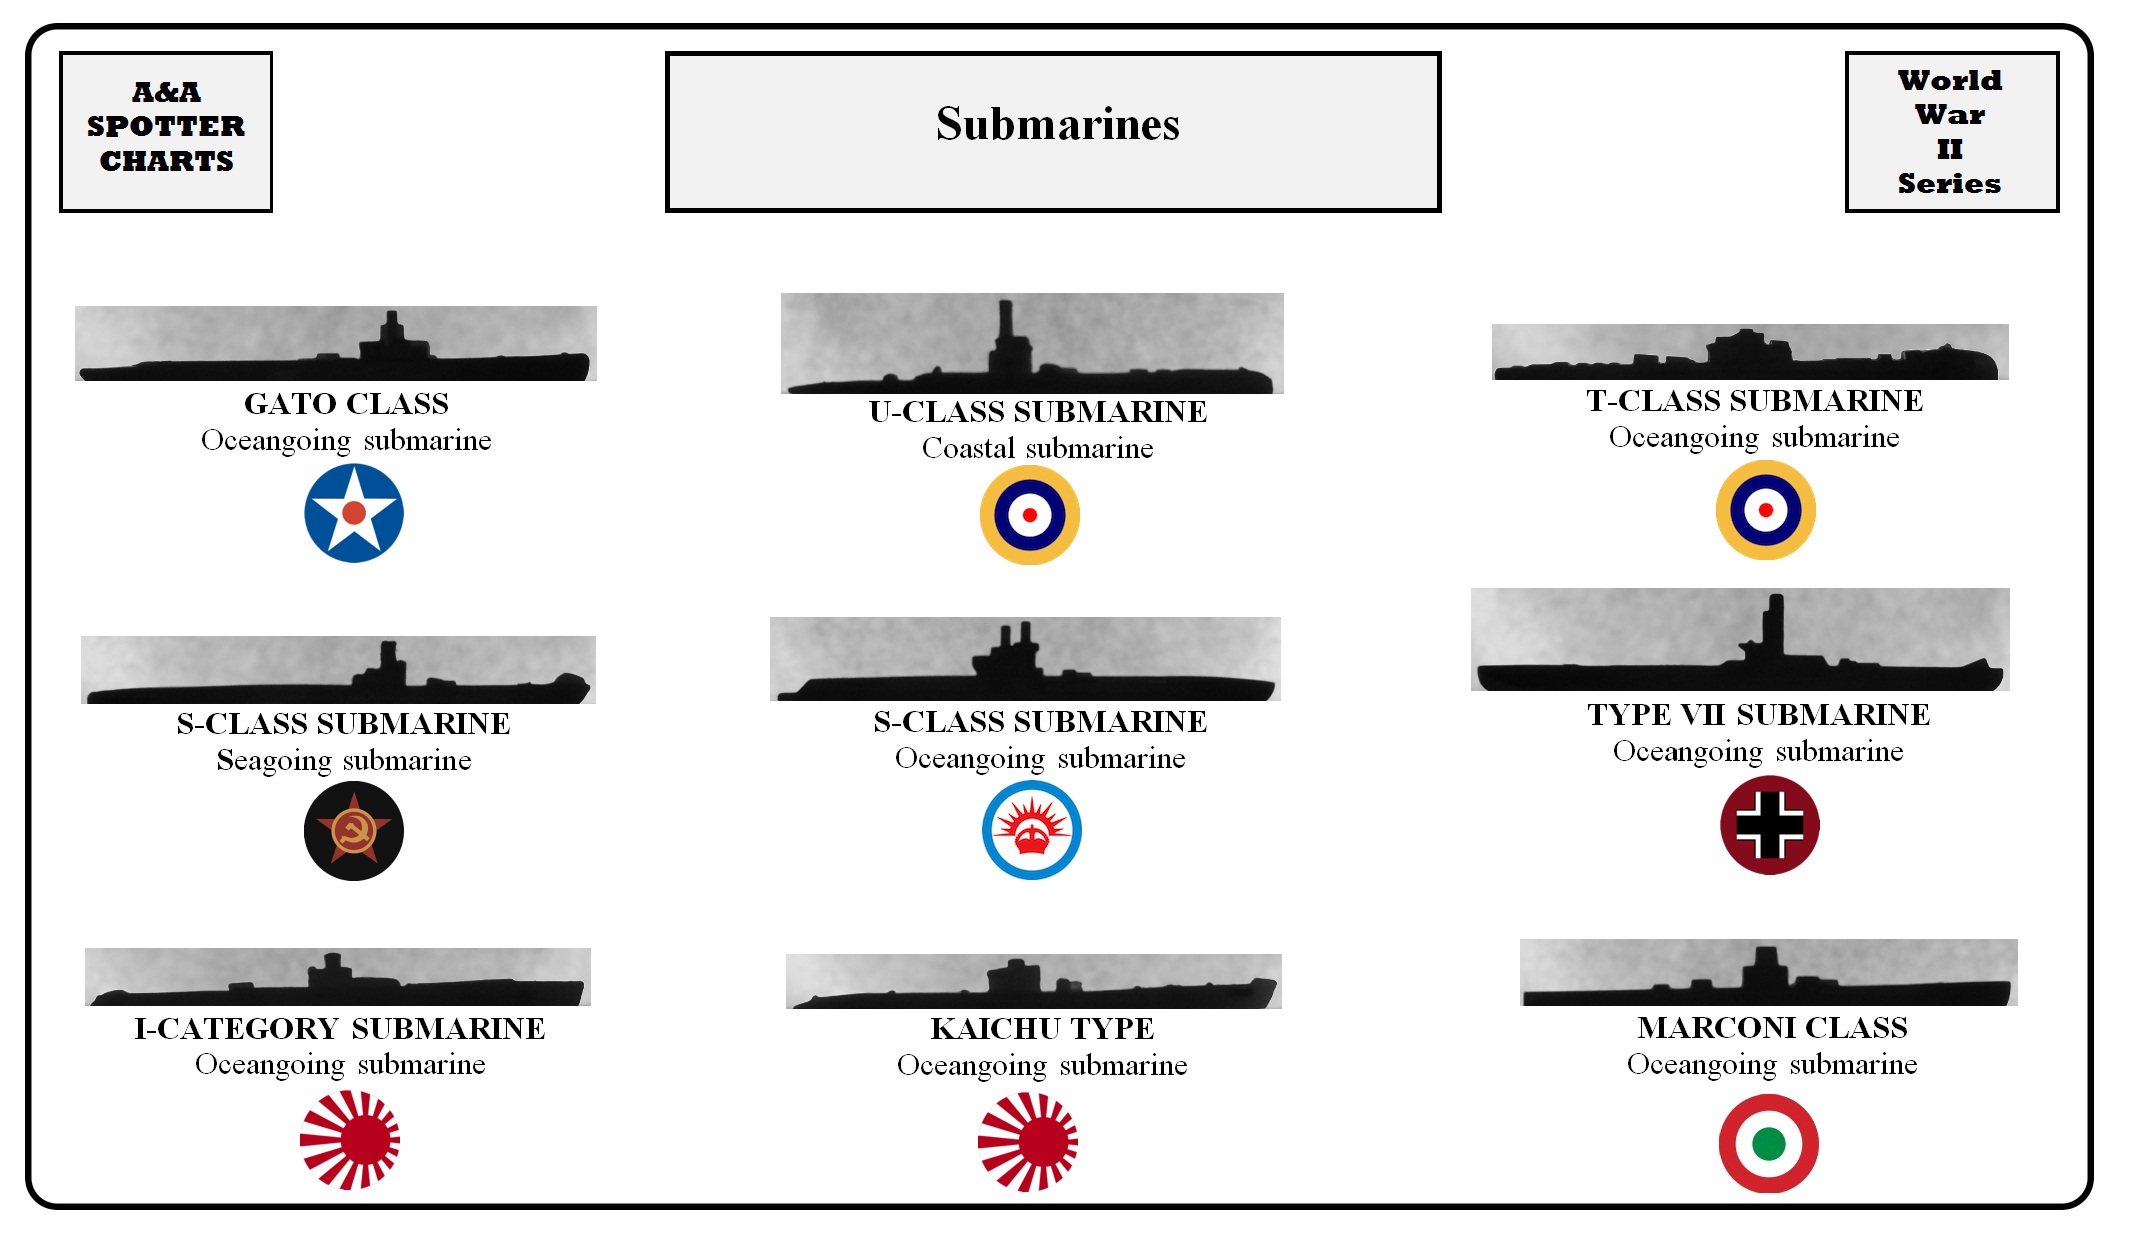 WW2-Sea-Submarines.jpg